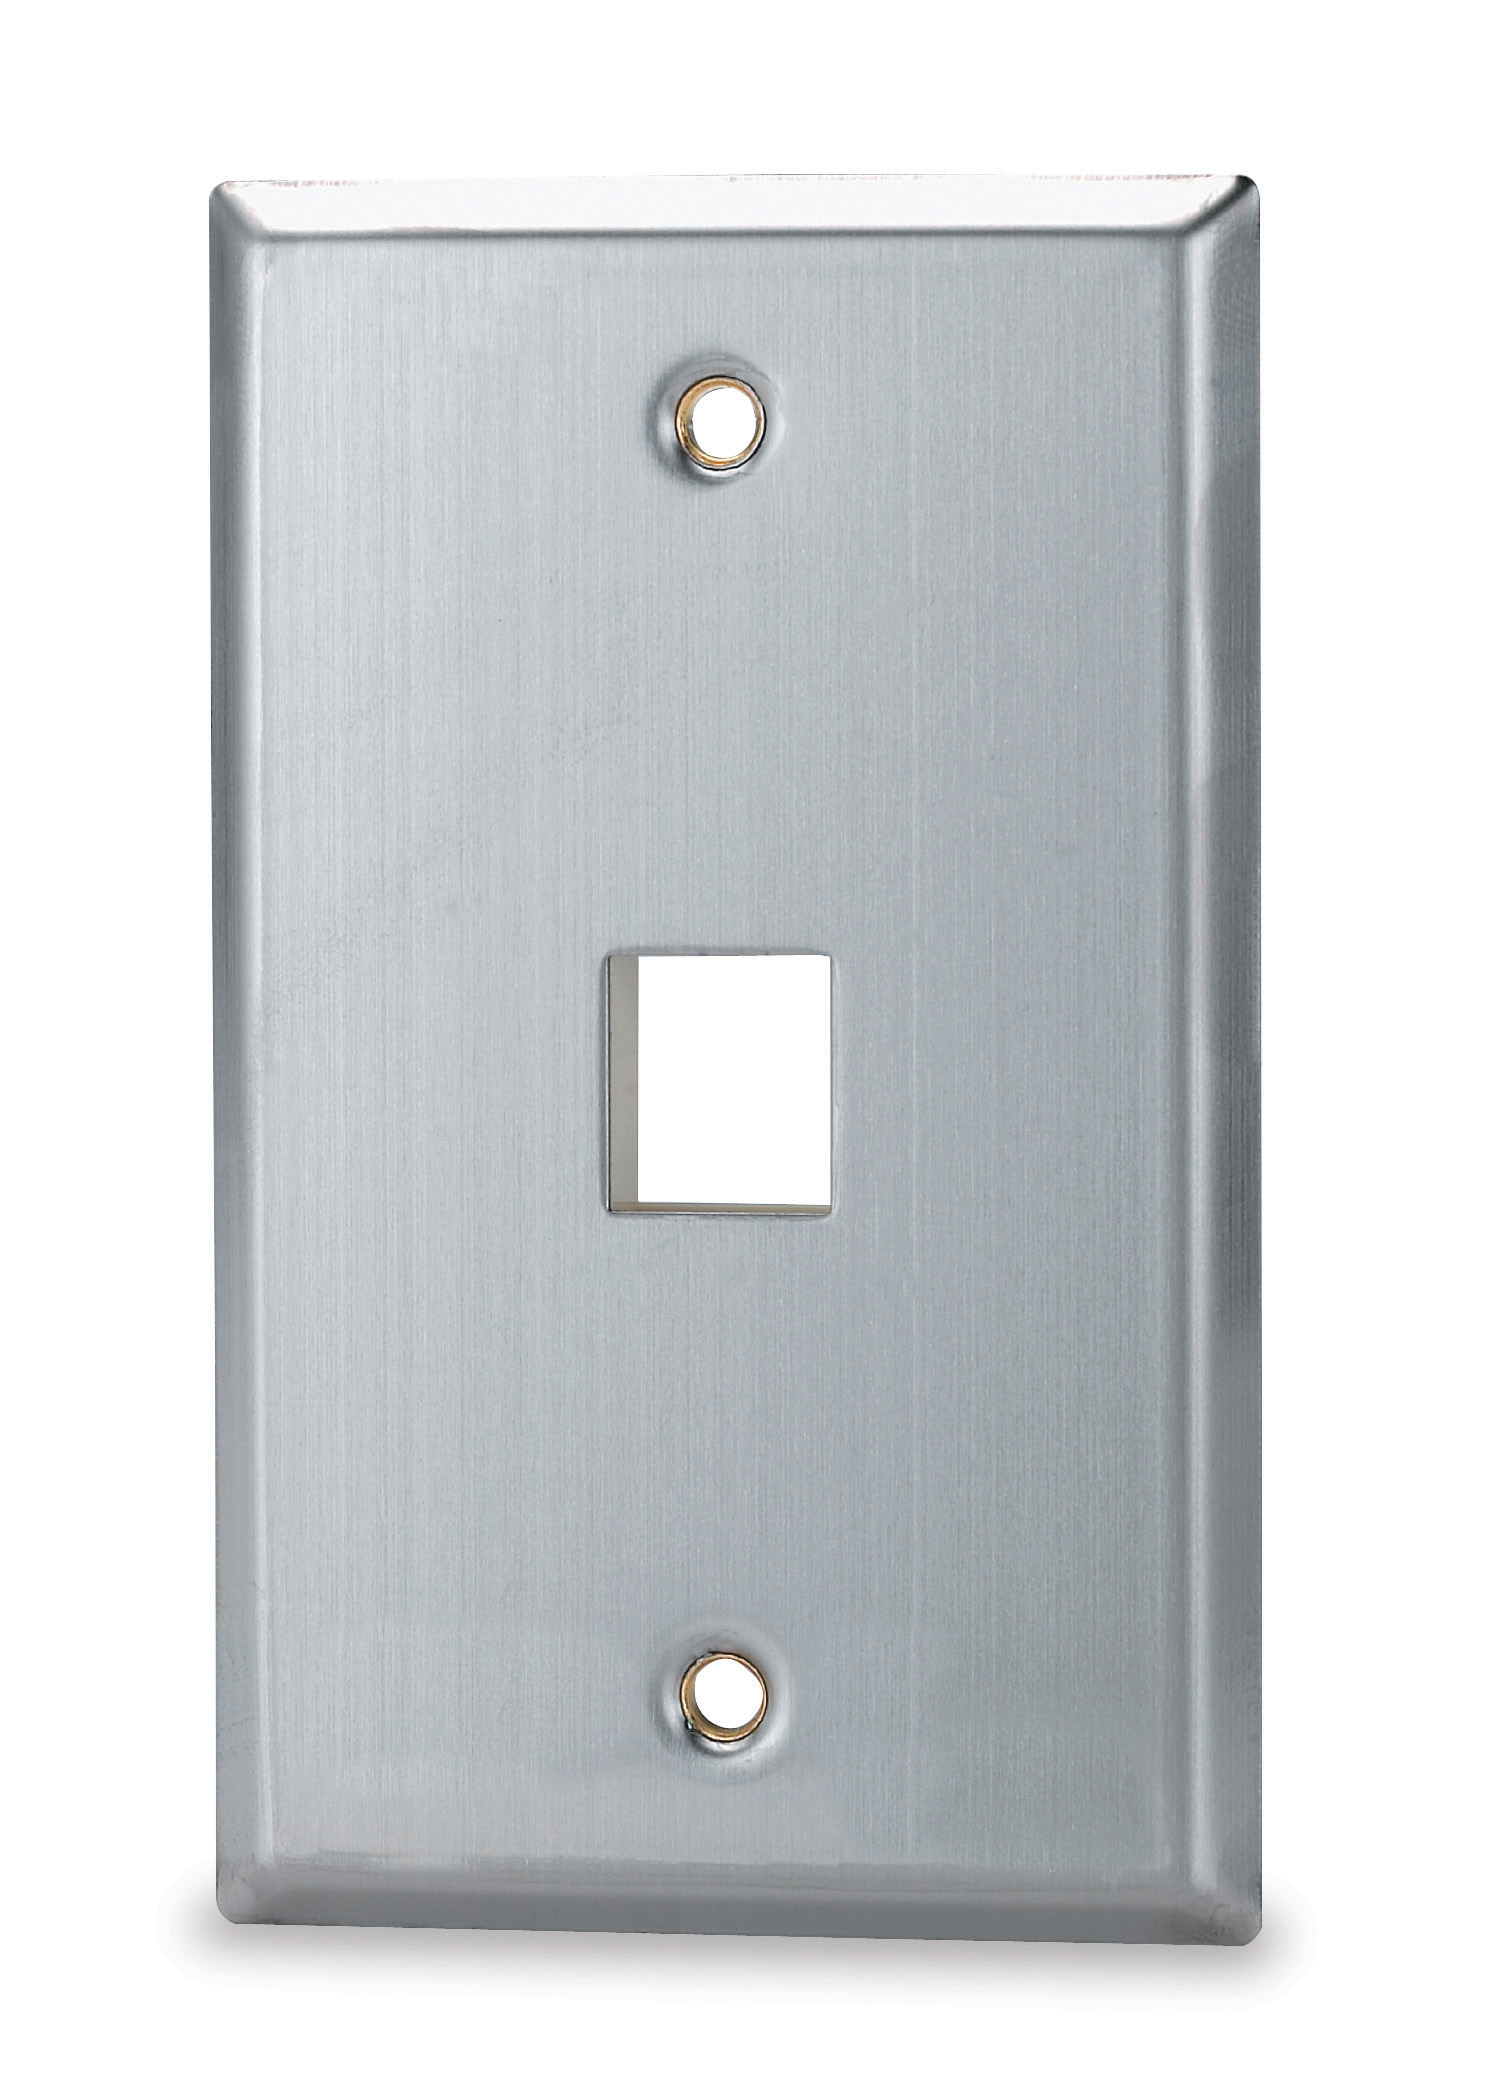 SGM SSKF-1 SGM FACE PLATE 1-PORT STAINLESS STEEL